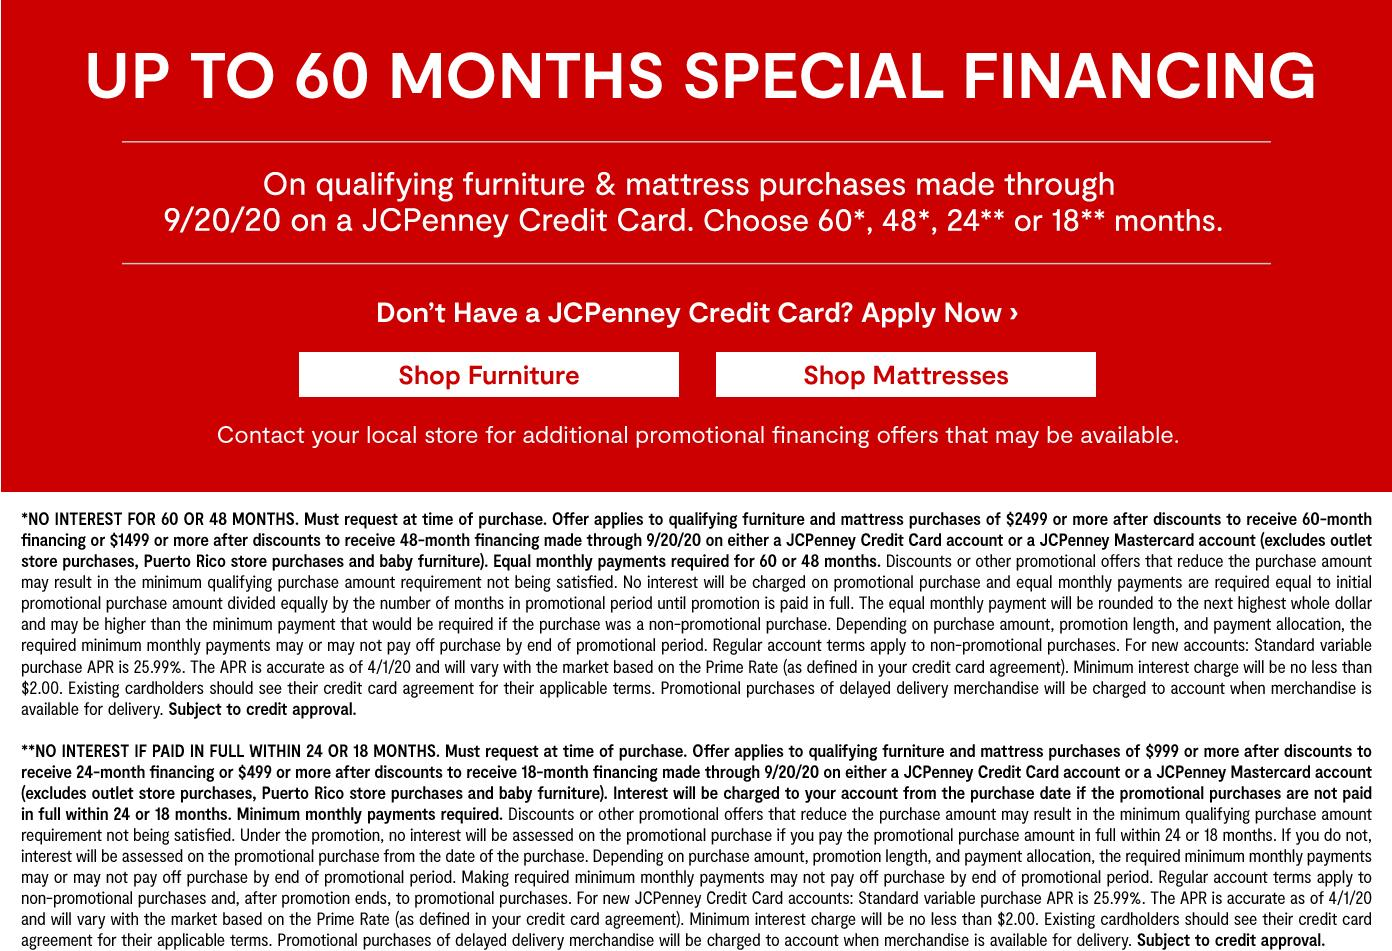 Up to 60 months special financing on qualifying furniture & mattress purchases made 9/20 on JCP credit card